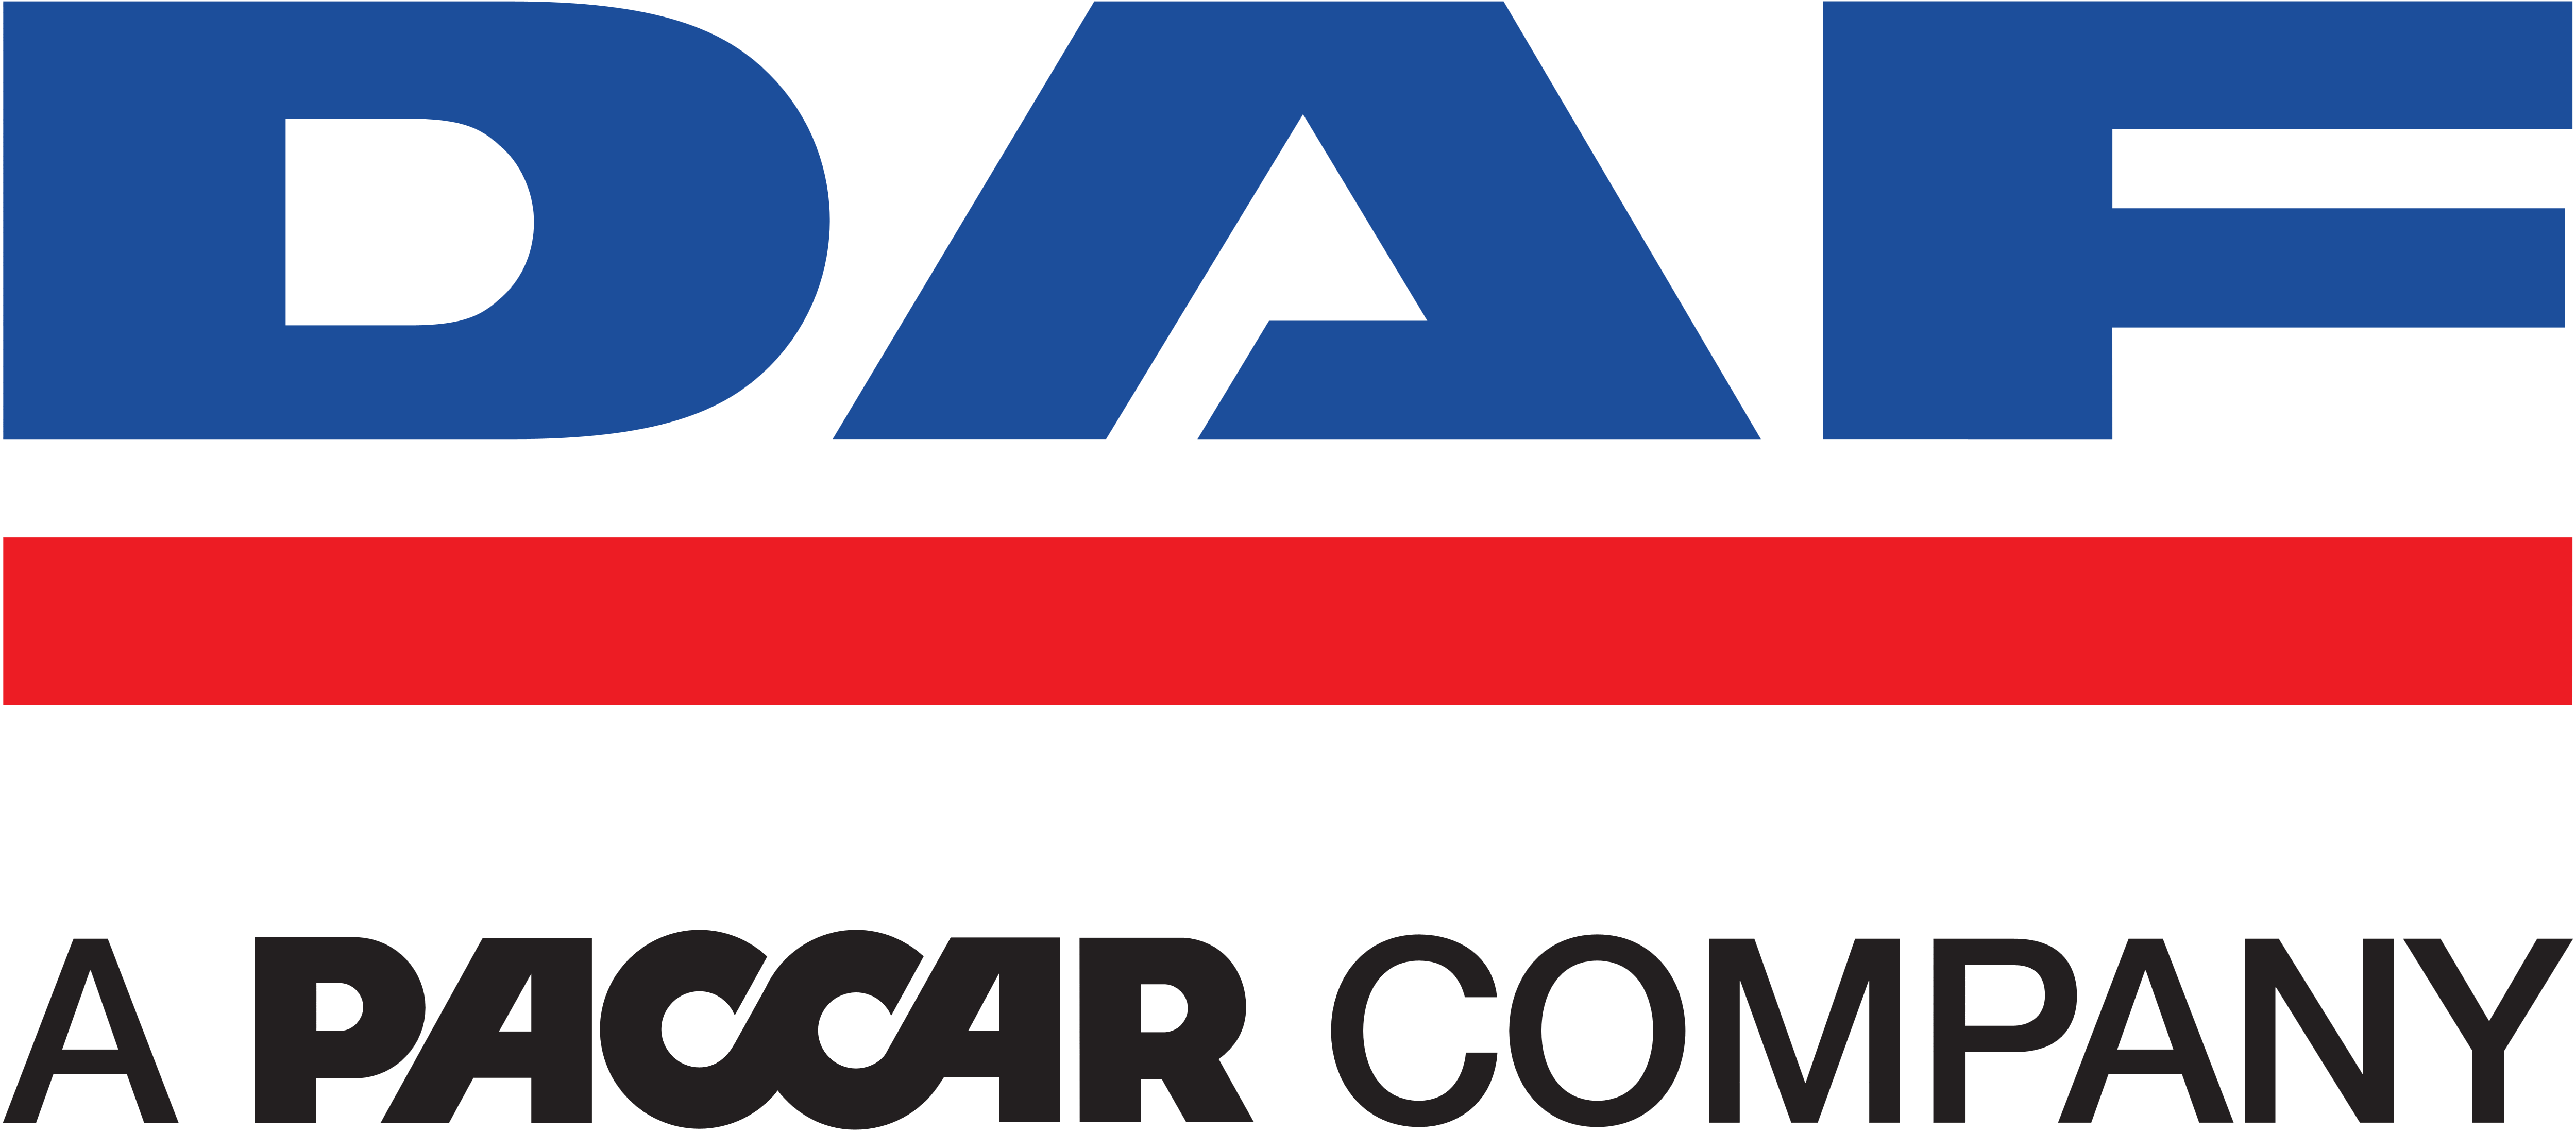 PACCAR Logo - DAF logo with tagline – a paccar company – Logos Download